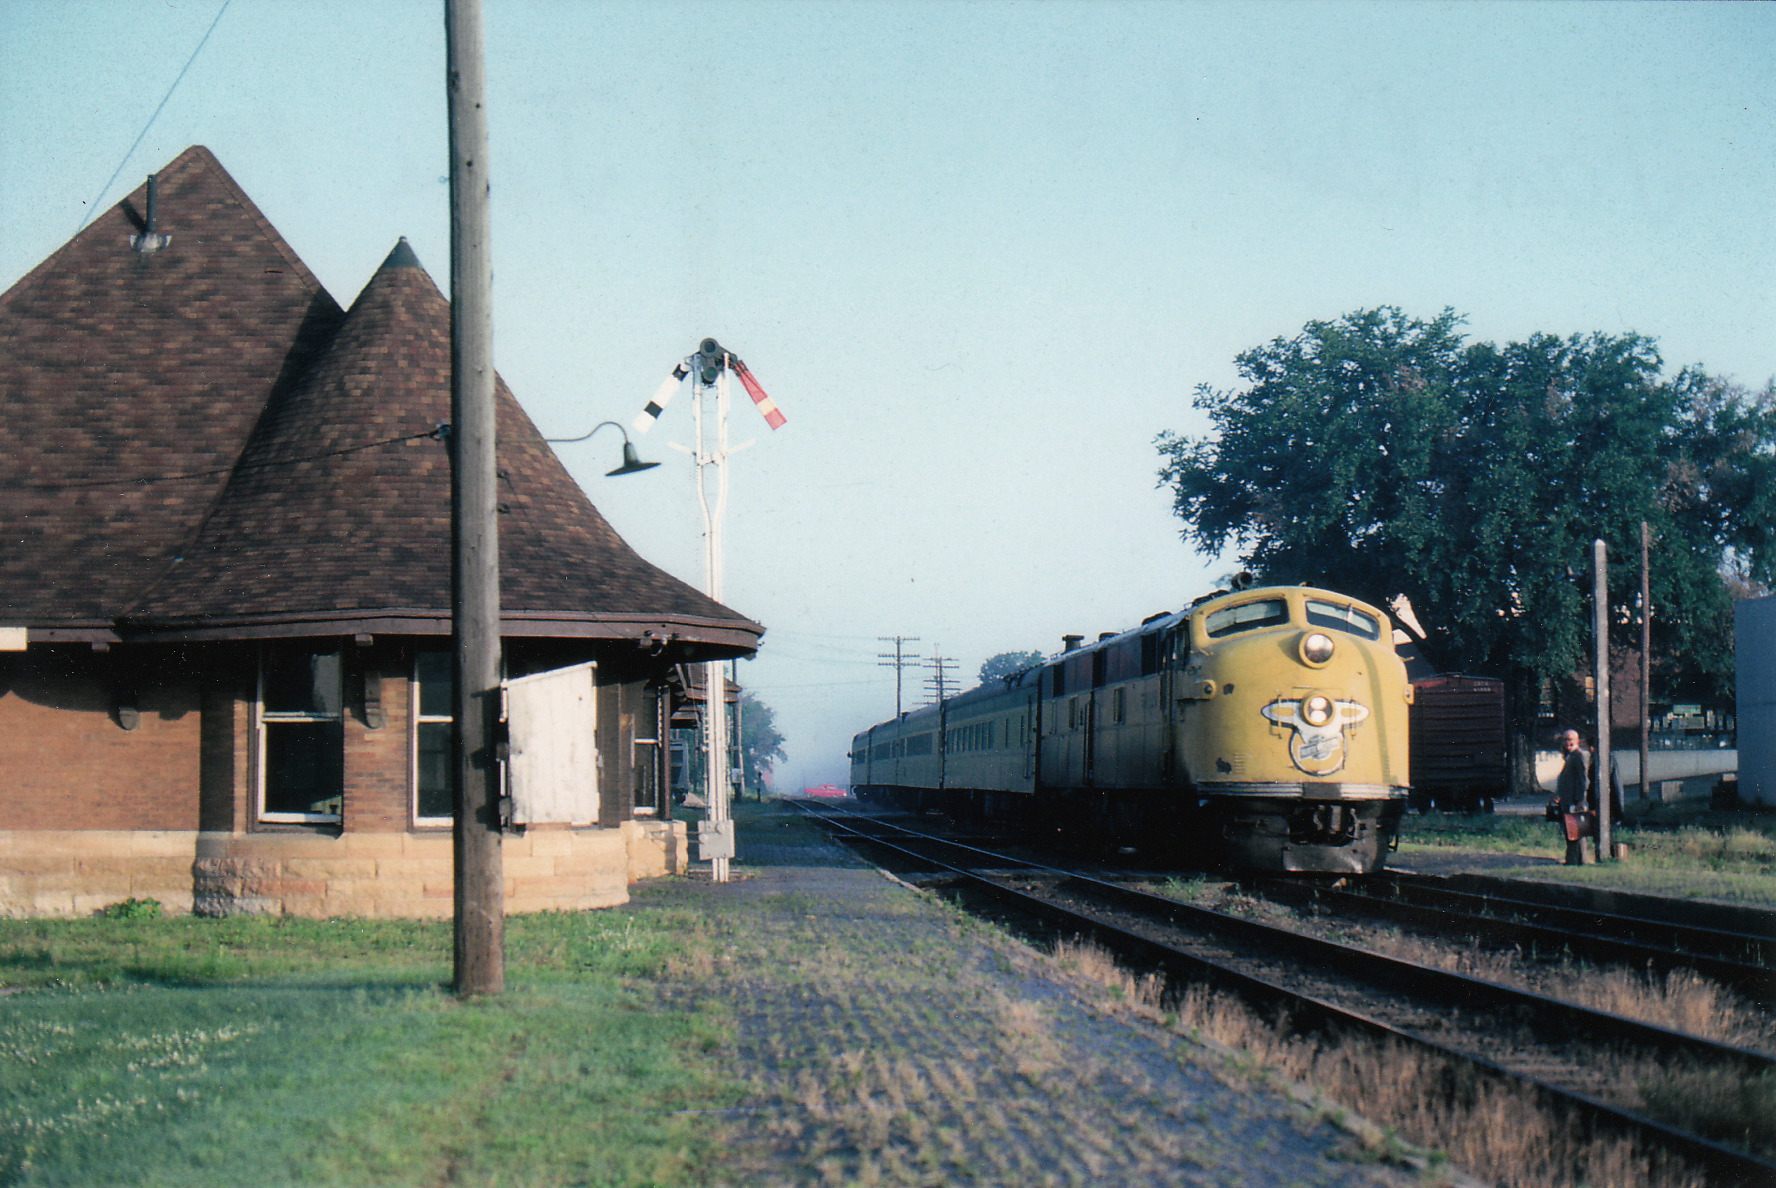 Morrison Depot and Passenger Train